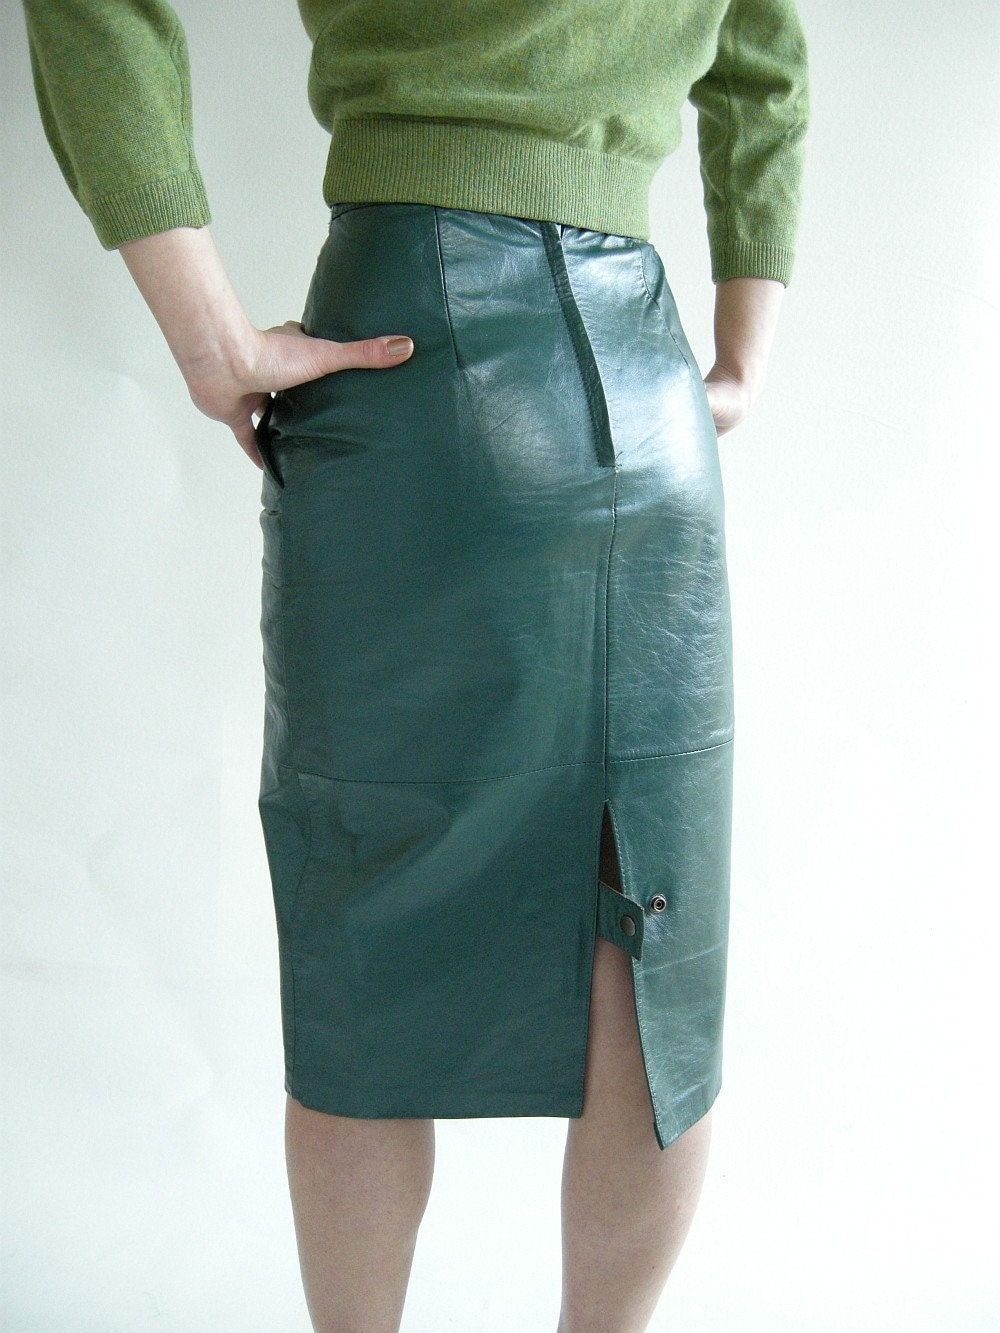 sea green vintage 80s leather skirt xs high waisted by